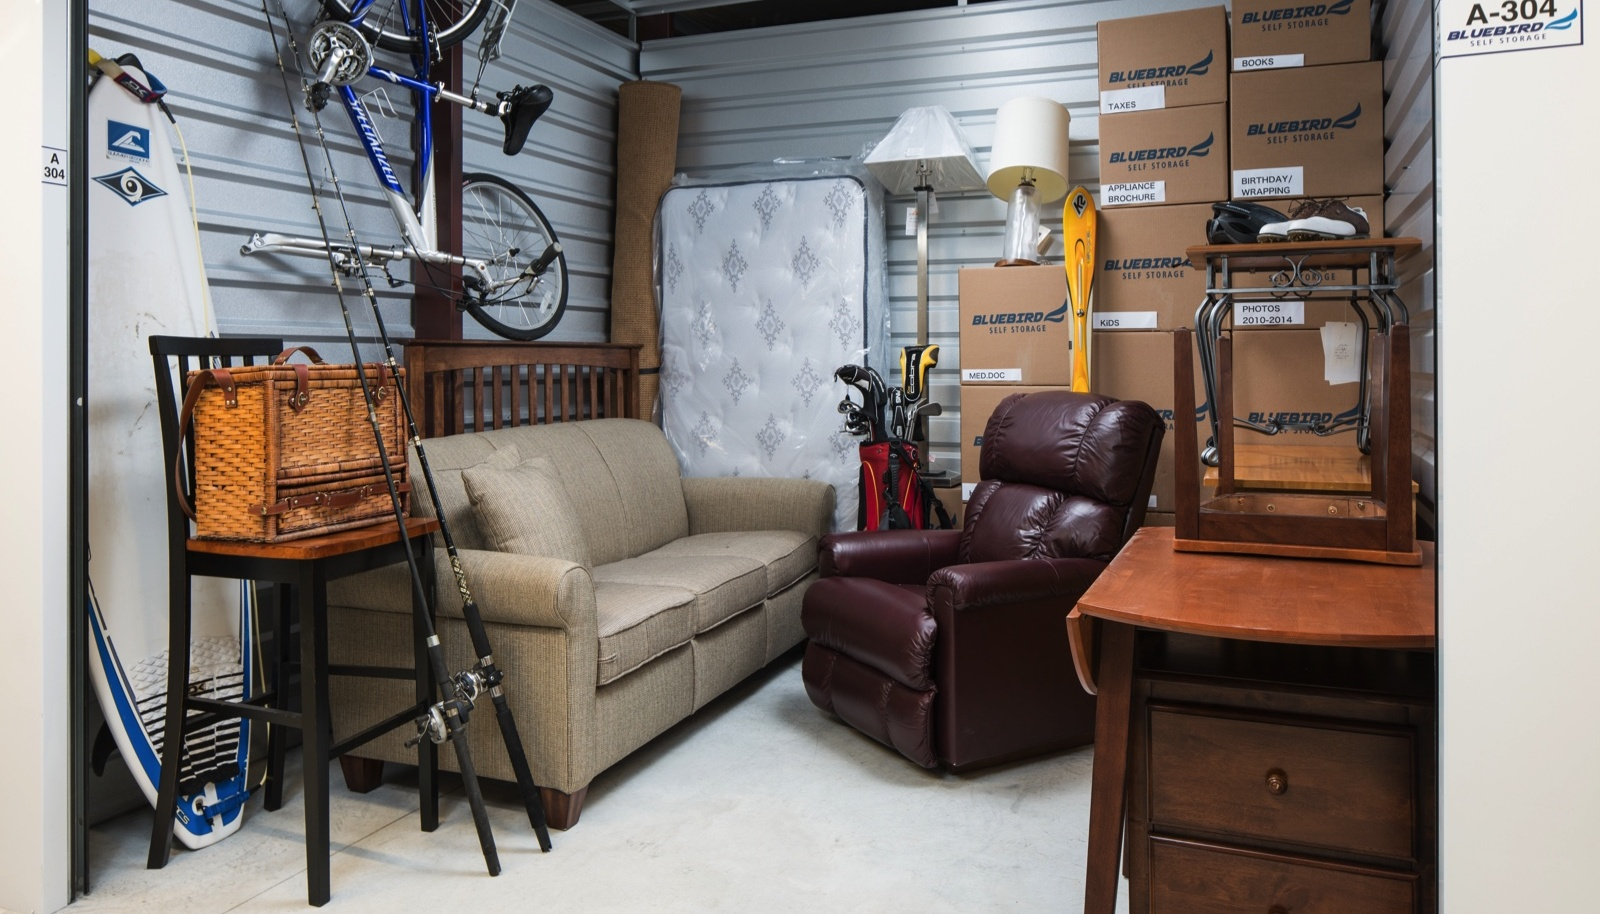 Furniture Storage - Choosing the Right One